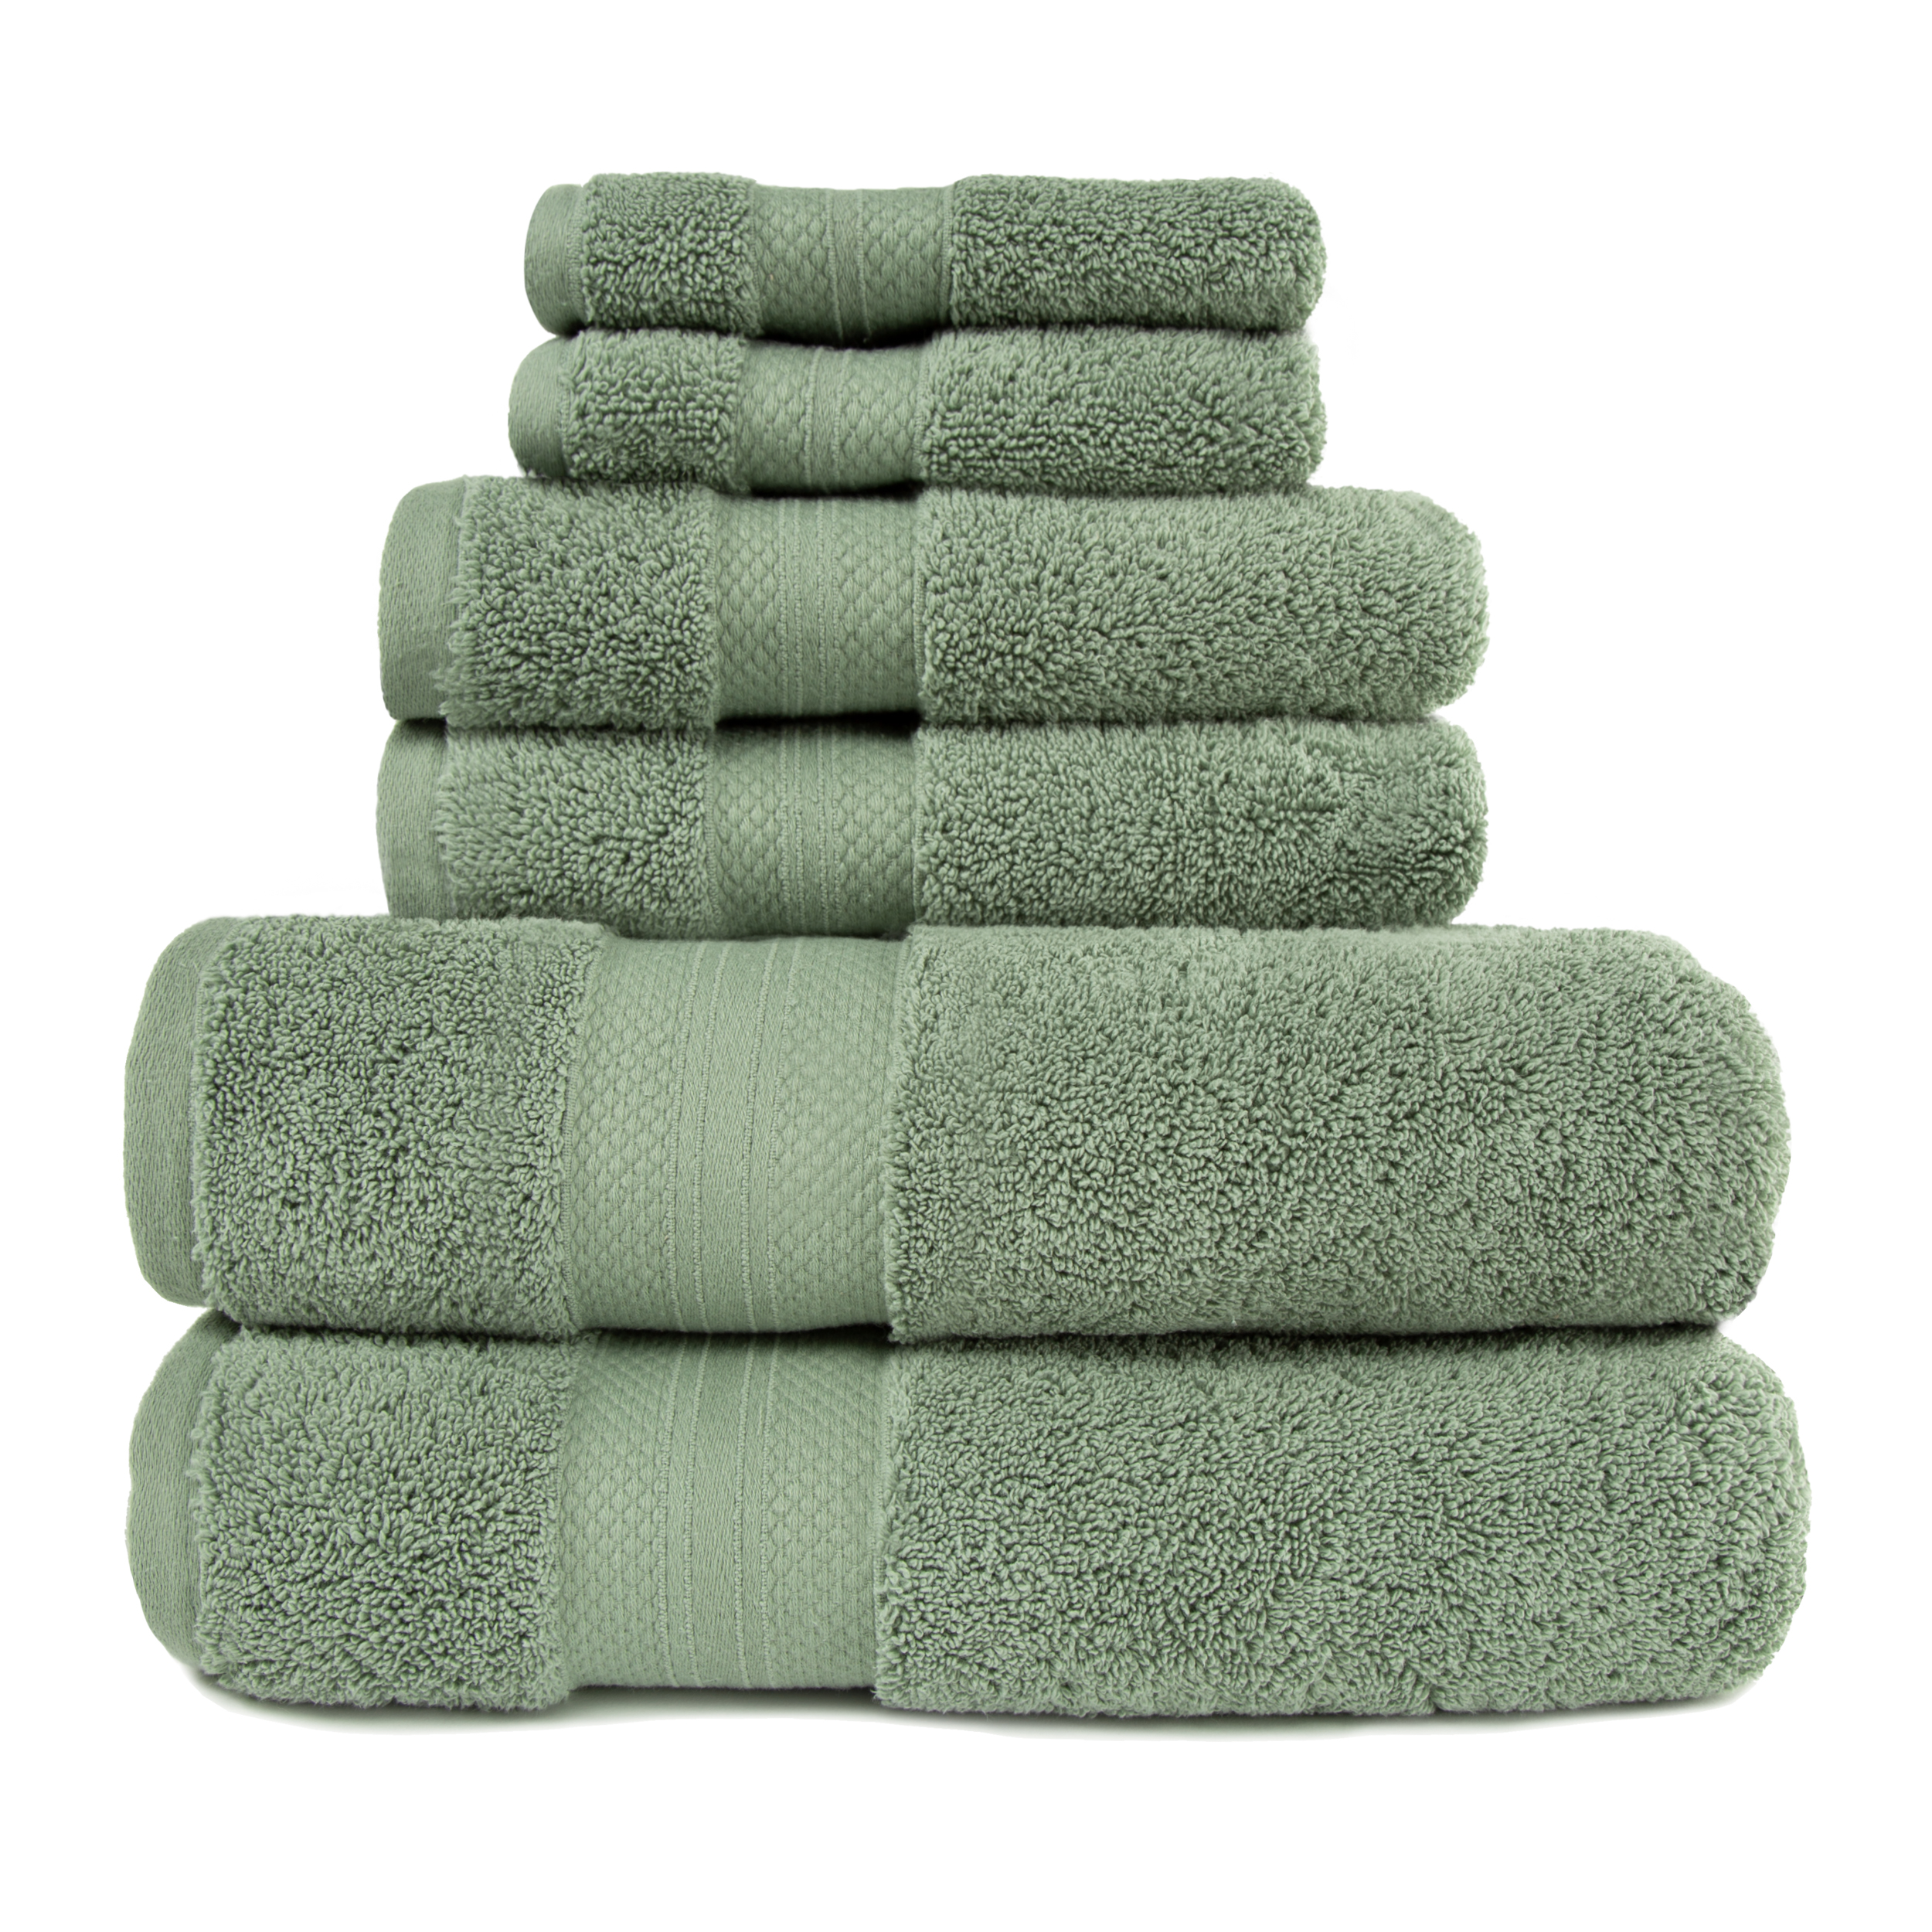 Superior 100-Percent Turkish Cotton 6-Piece Towel Set - Black